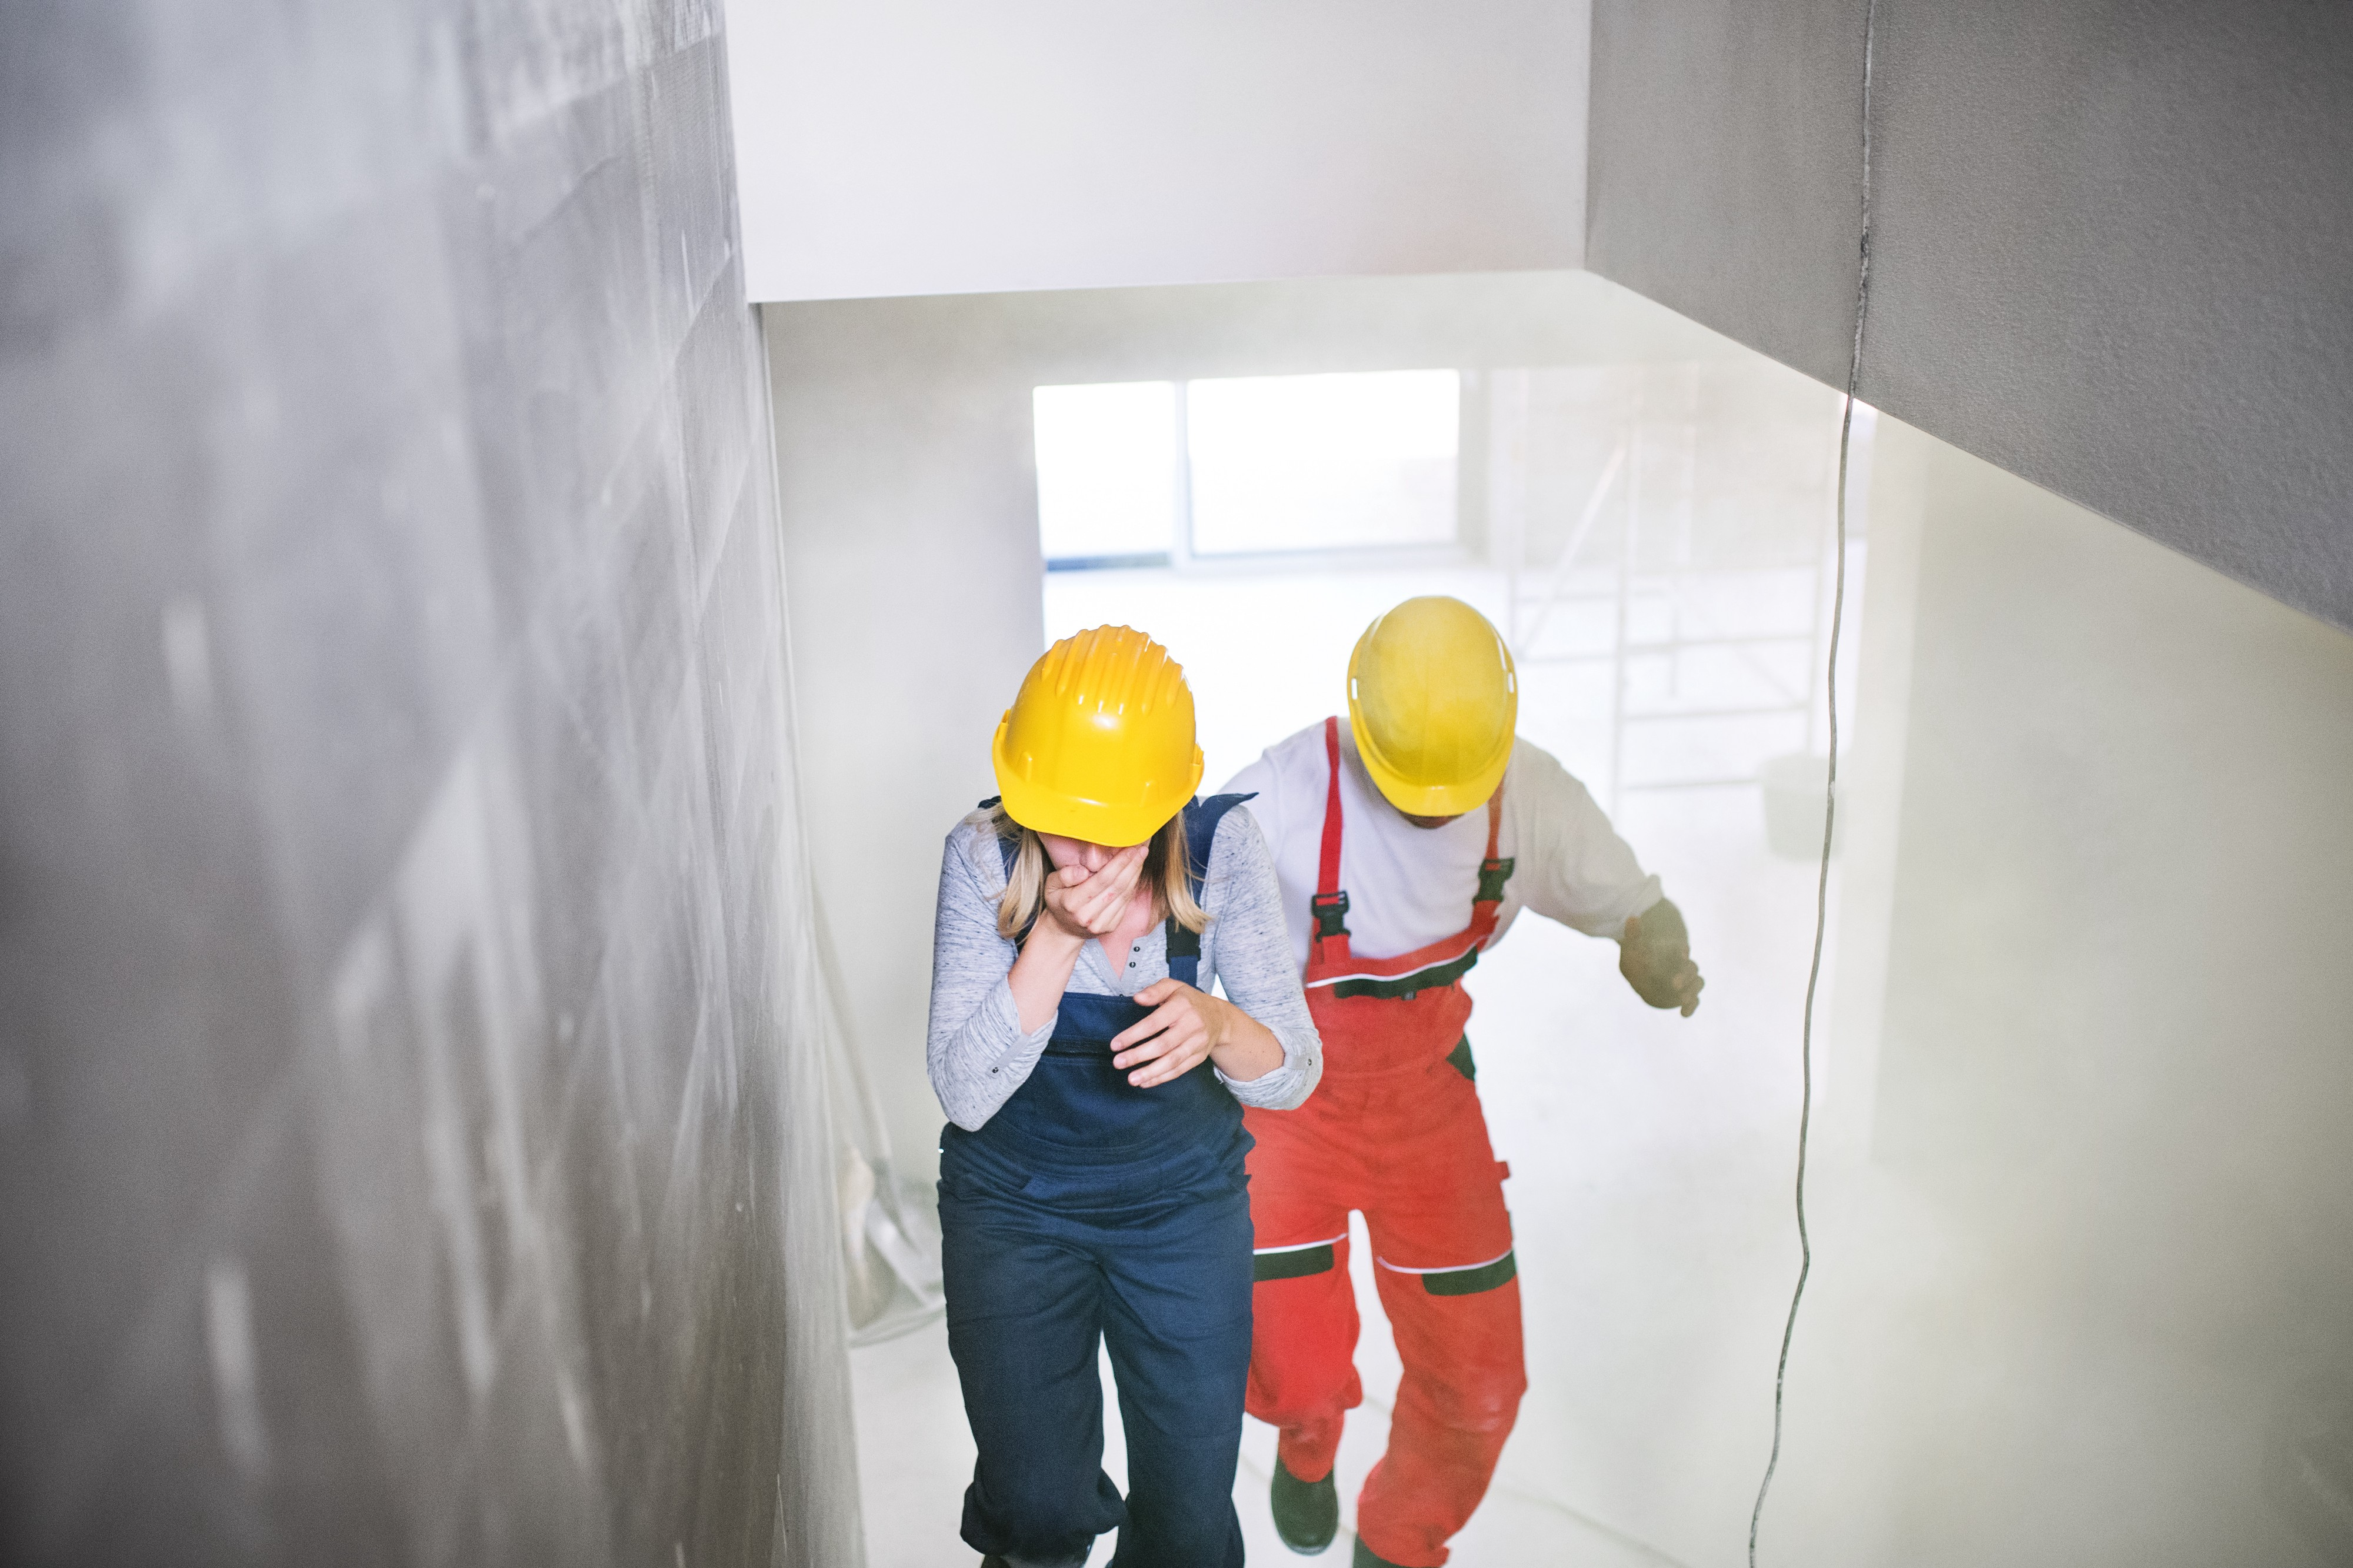 A woman and a man in construction clothes are running upstairs through dust while coughing at a worksite.